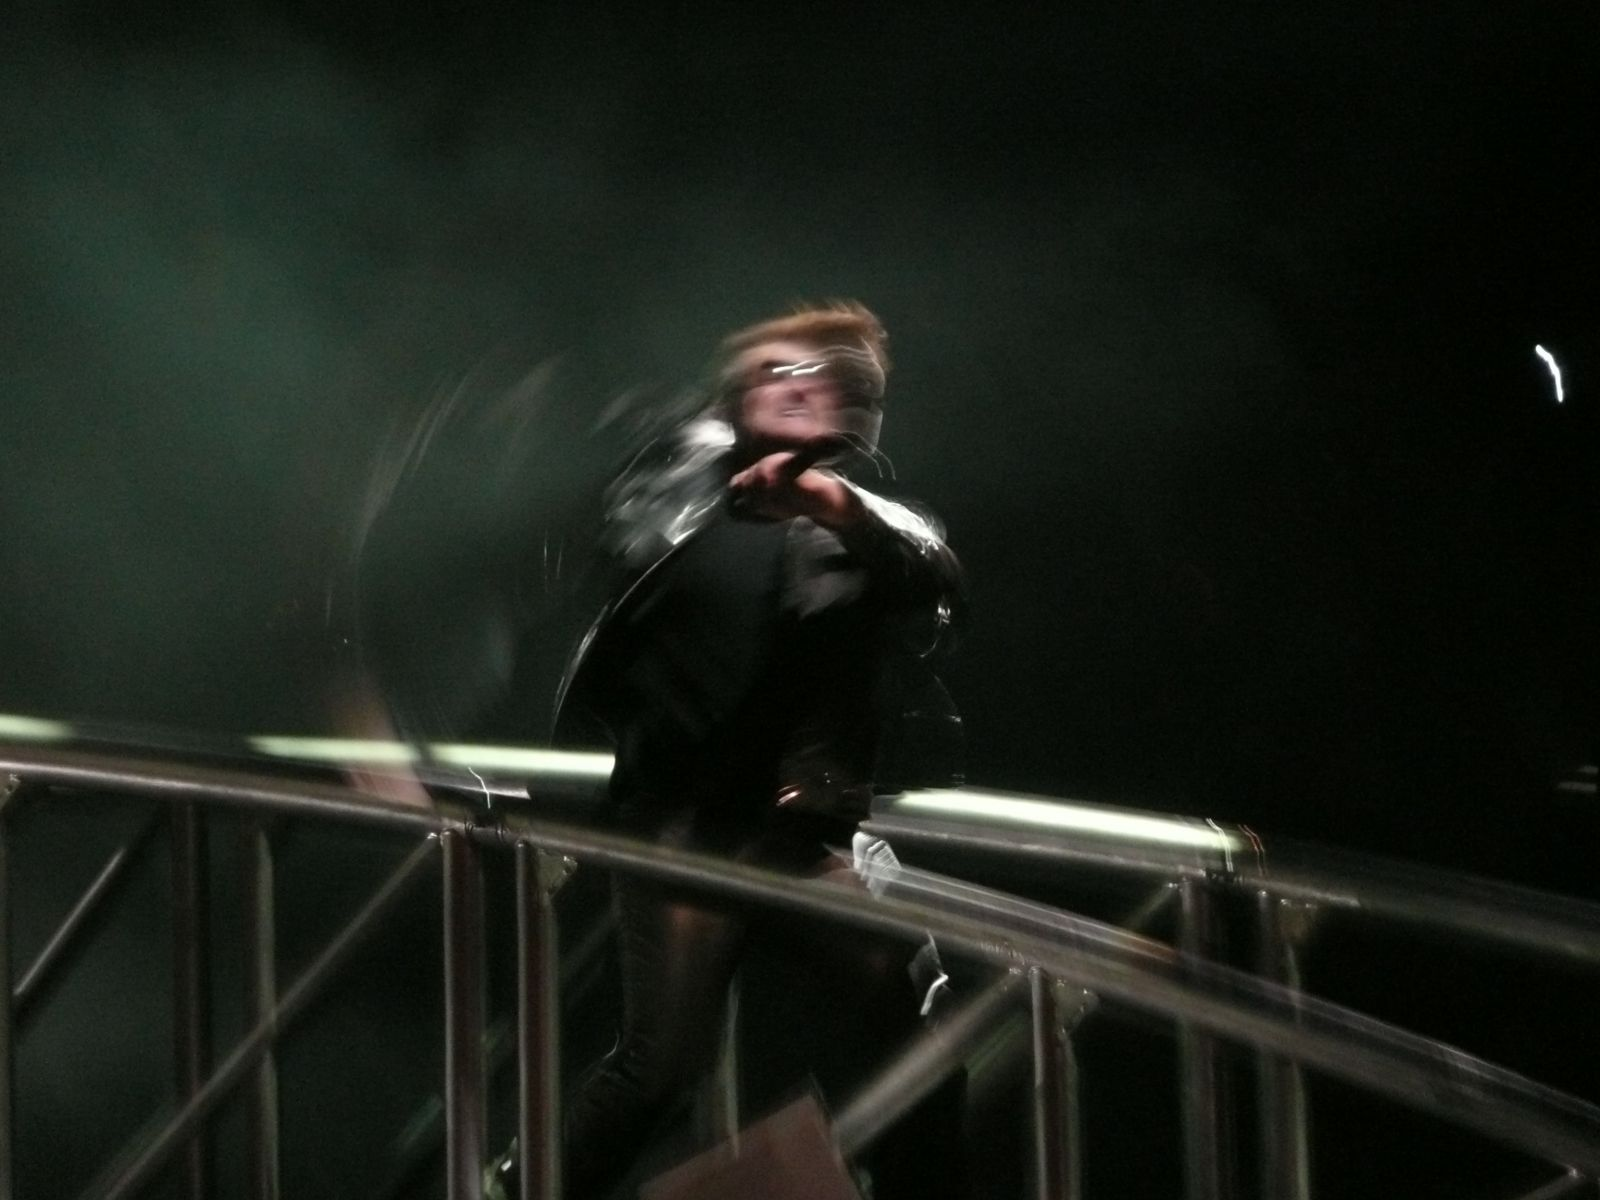 Bono (Dis)apparating during the show (Brussels 22/9/2010)